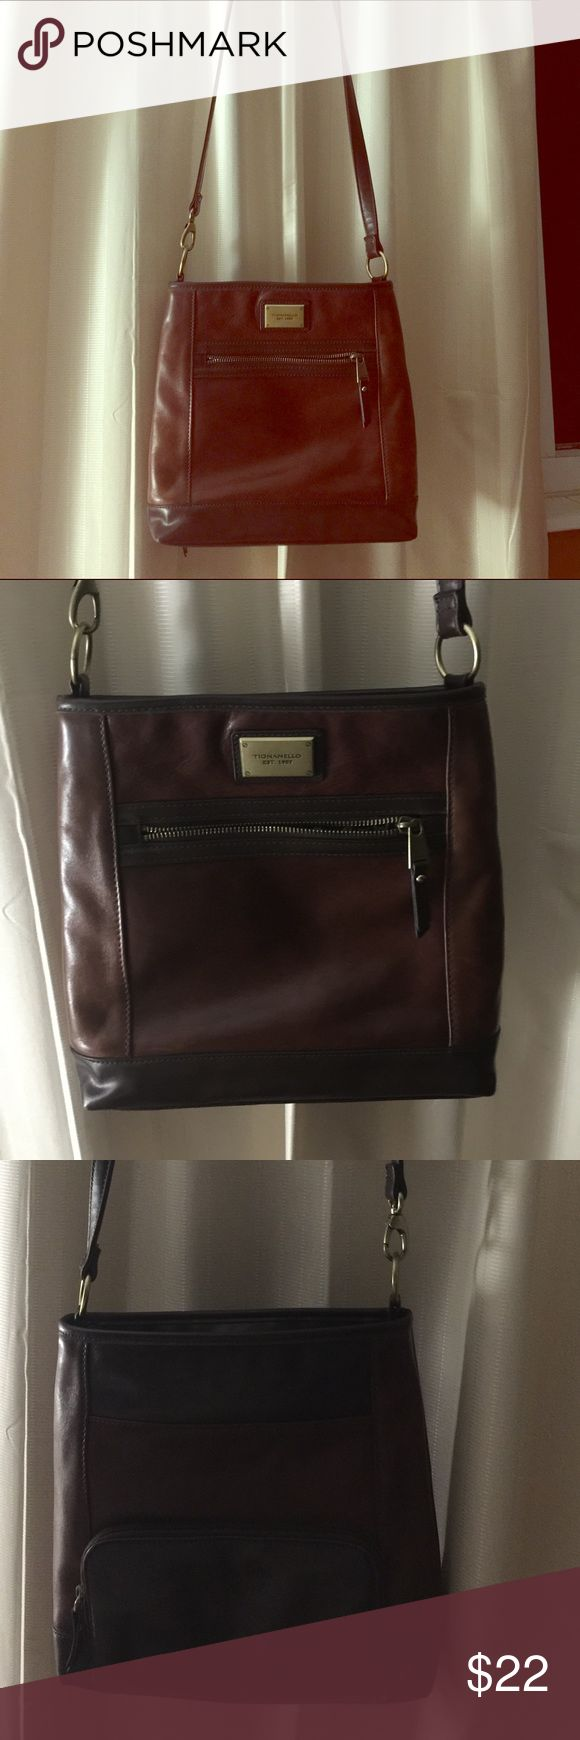 Tignanello leather purse in two tone brown Tignanello leather crossbody purse in two tone brown, a deep burgundy brown on the body and a darker brown on the trim and bottom of bag. Used a handful of times but in mint condition. No wallet required because back pocket is built in wallet with 8 places for your cards and a zippered area for money. 8 Length and 10 width. Tignanello Bags Crossbody Bags